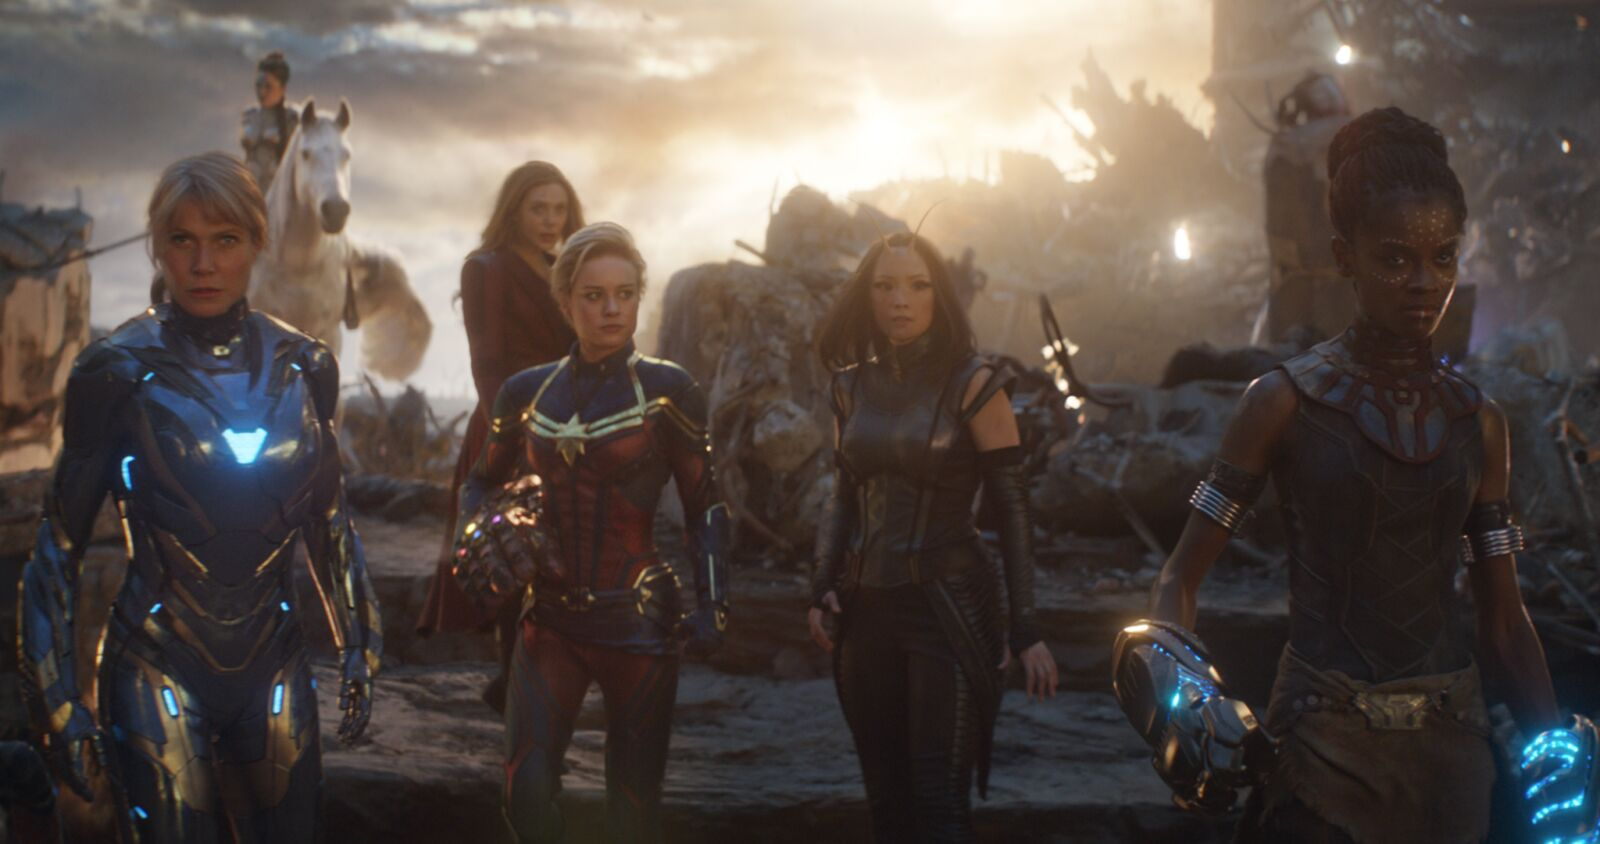 4 ways we could see an all-female MCU movie unfold